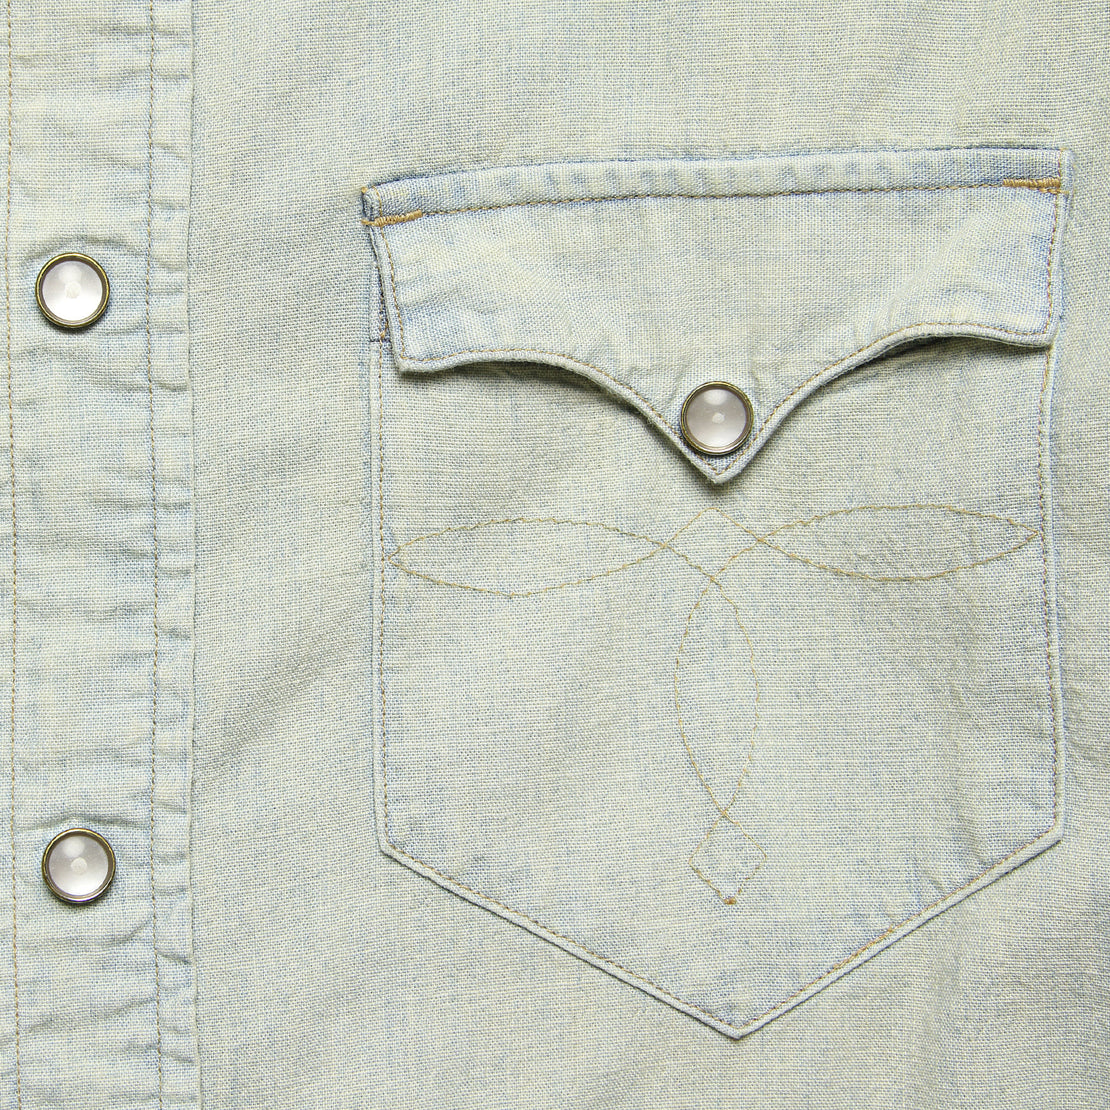 Slim Chambray Buffalo Western Shirt - Light Wash - RRL - STAG Provisions - Tops - L/S Woven - Solid